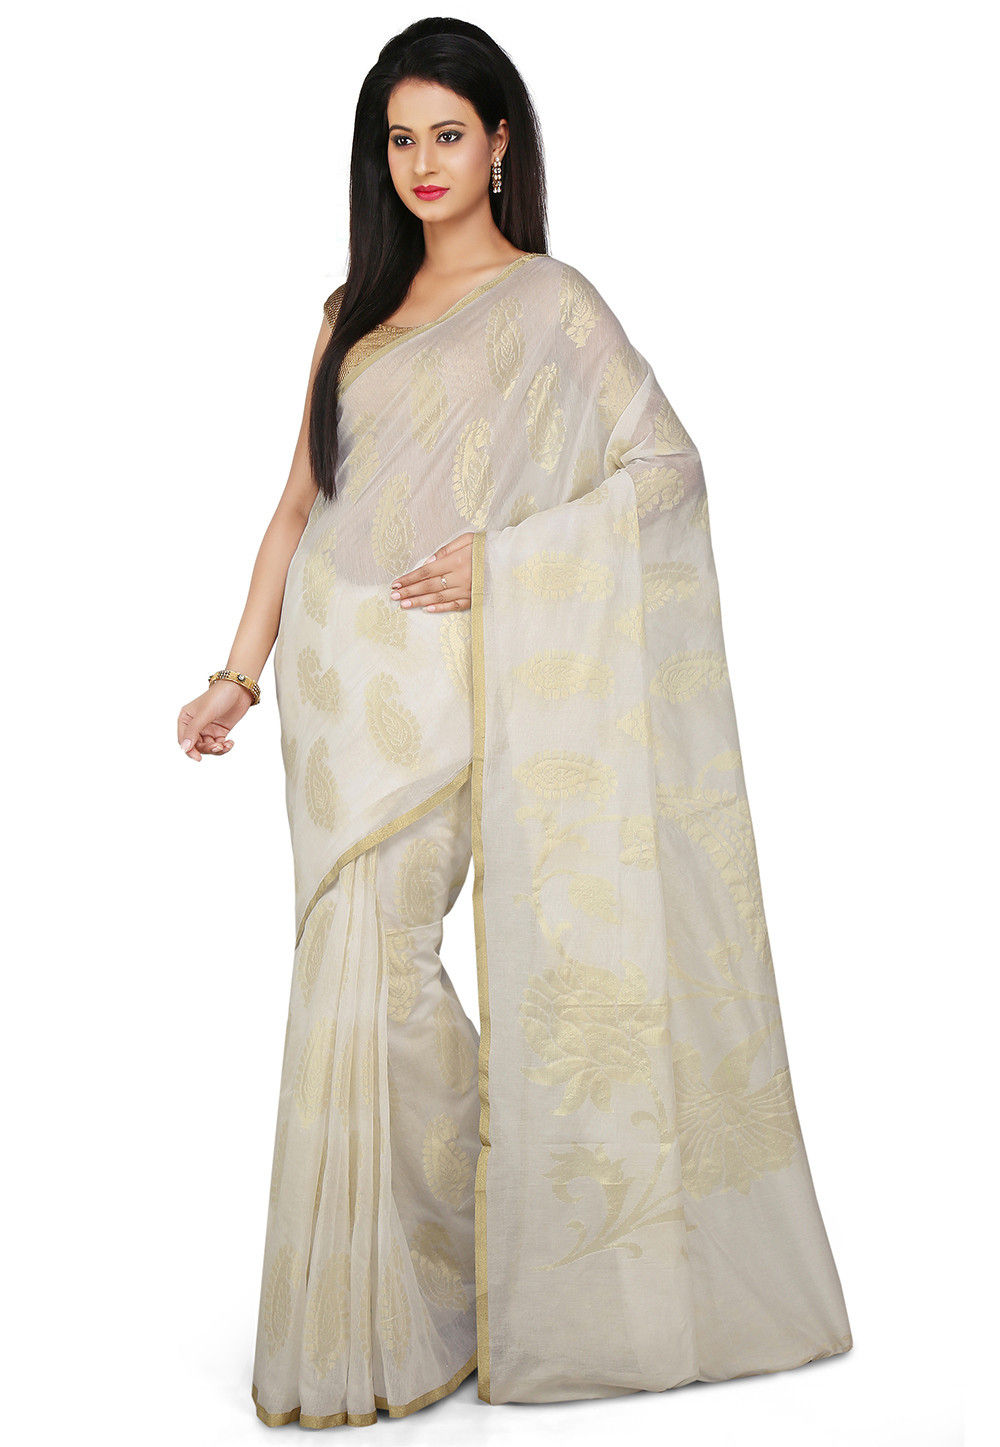 Woven Pure Chanderi Cotton Silk Saree in Off White